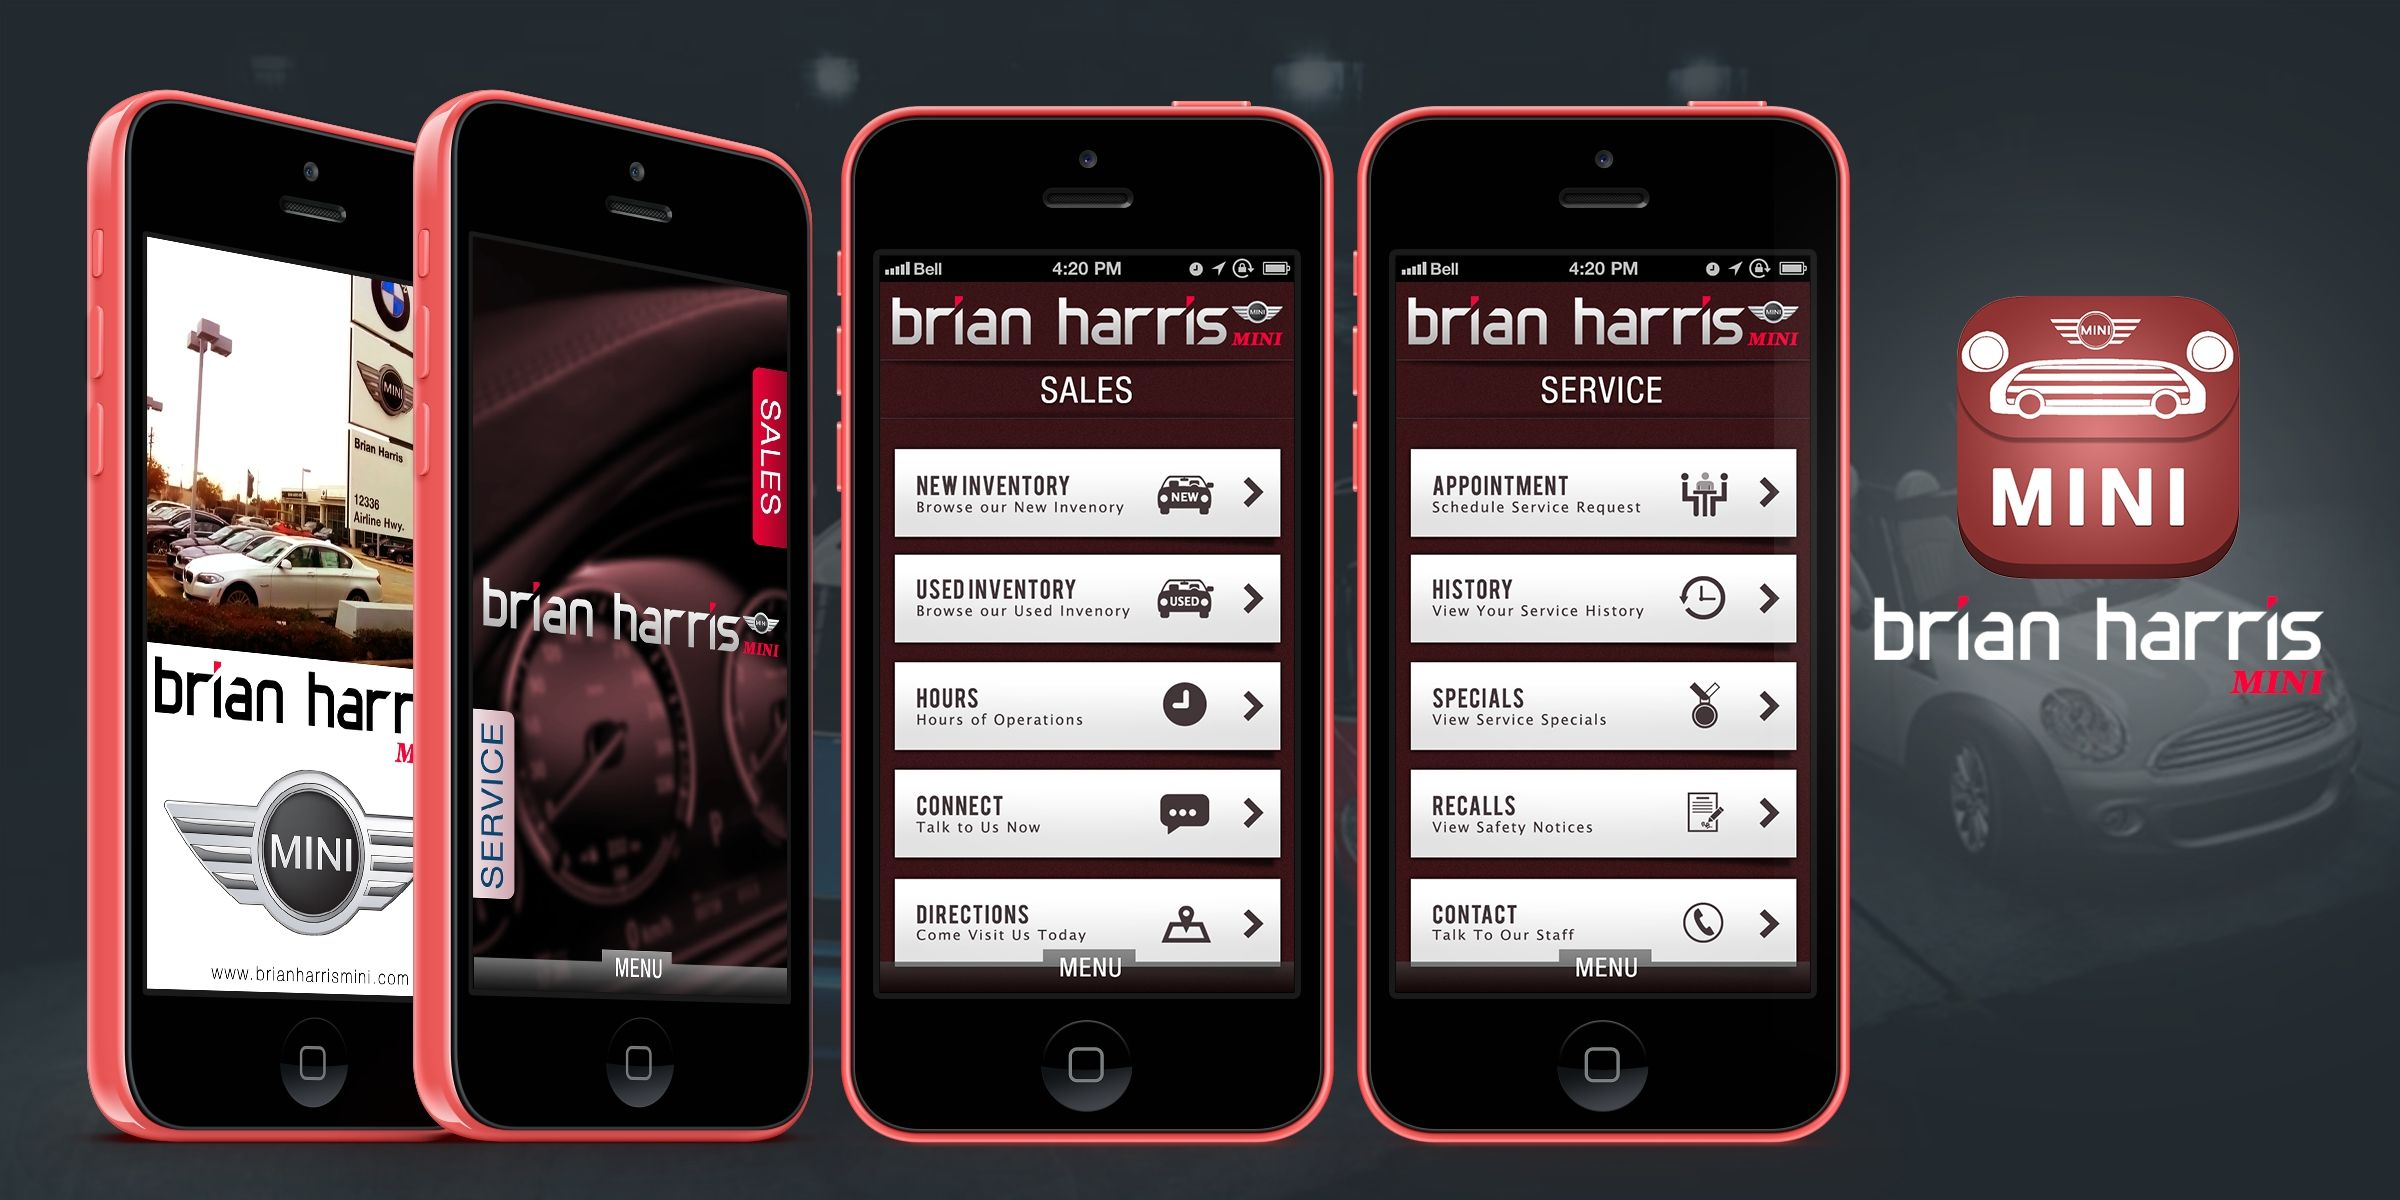 Iconic Solutions Brian Harris Mini Is A Baton Rouge And New Orleans Mini New And Used Car Dealer With Mini Mobile App App Development Mobile App Development